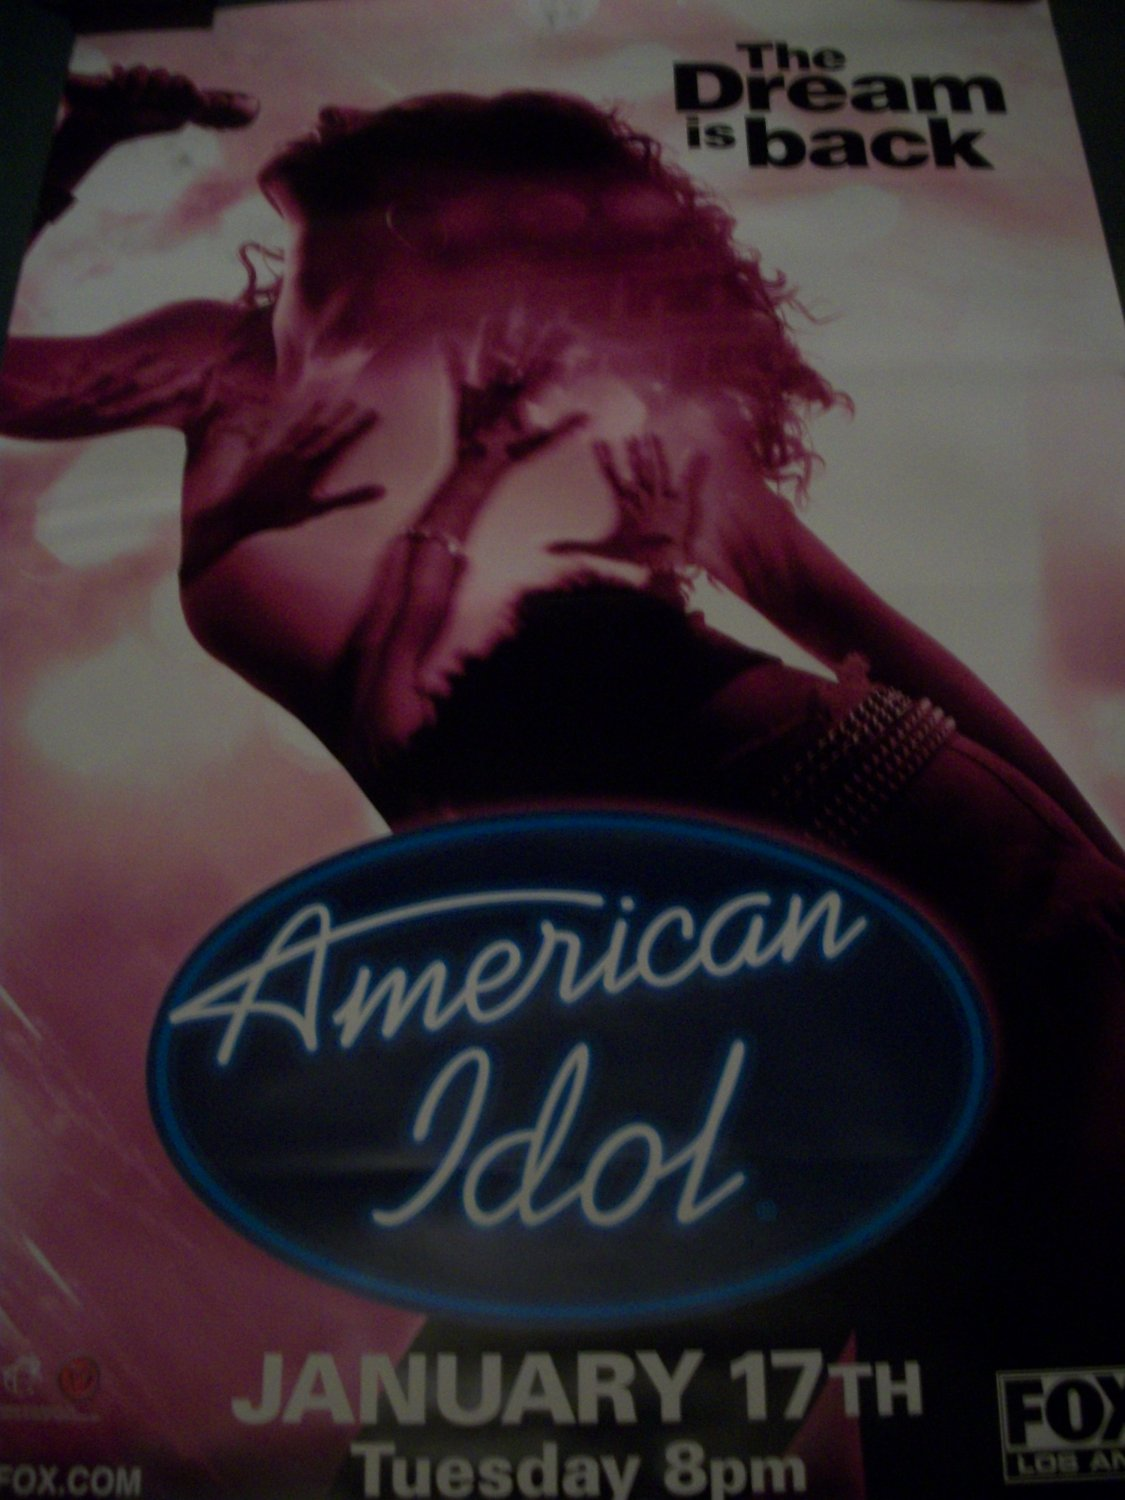 American Idol TV show Pink Female Poster Approx. 4 feet by 5 feet 9 inches